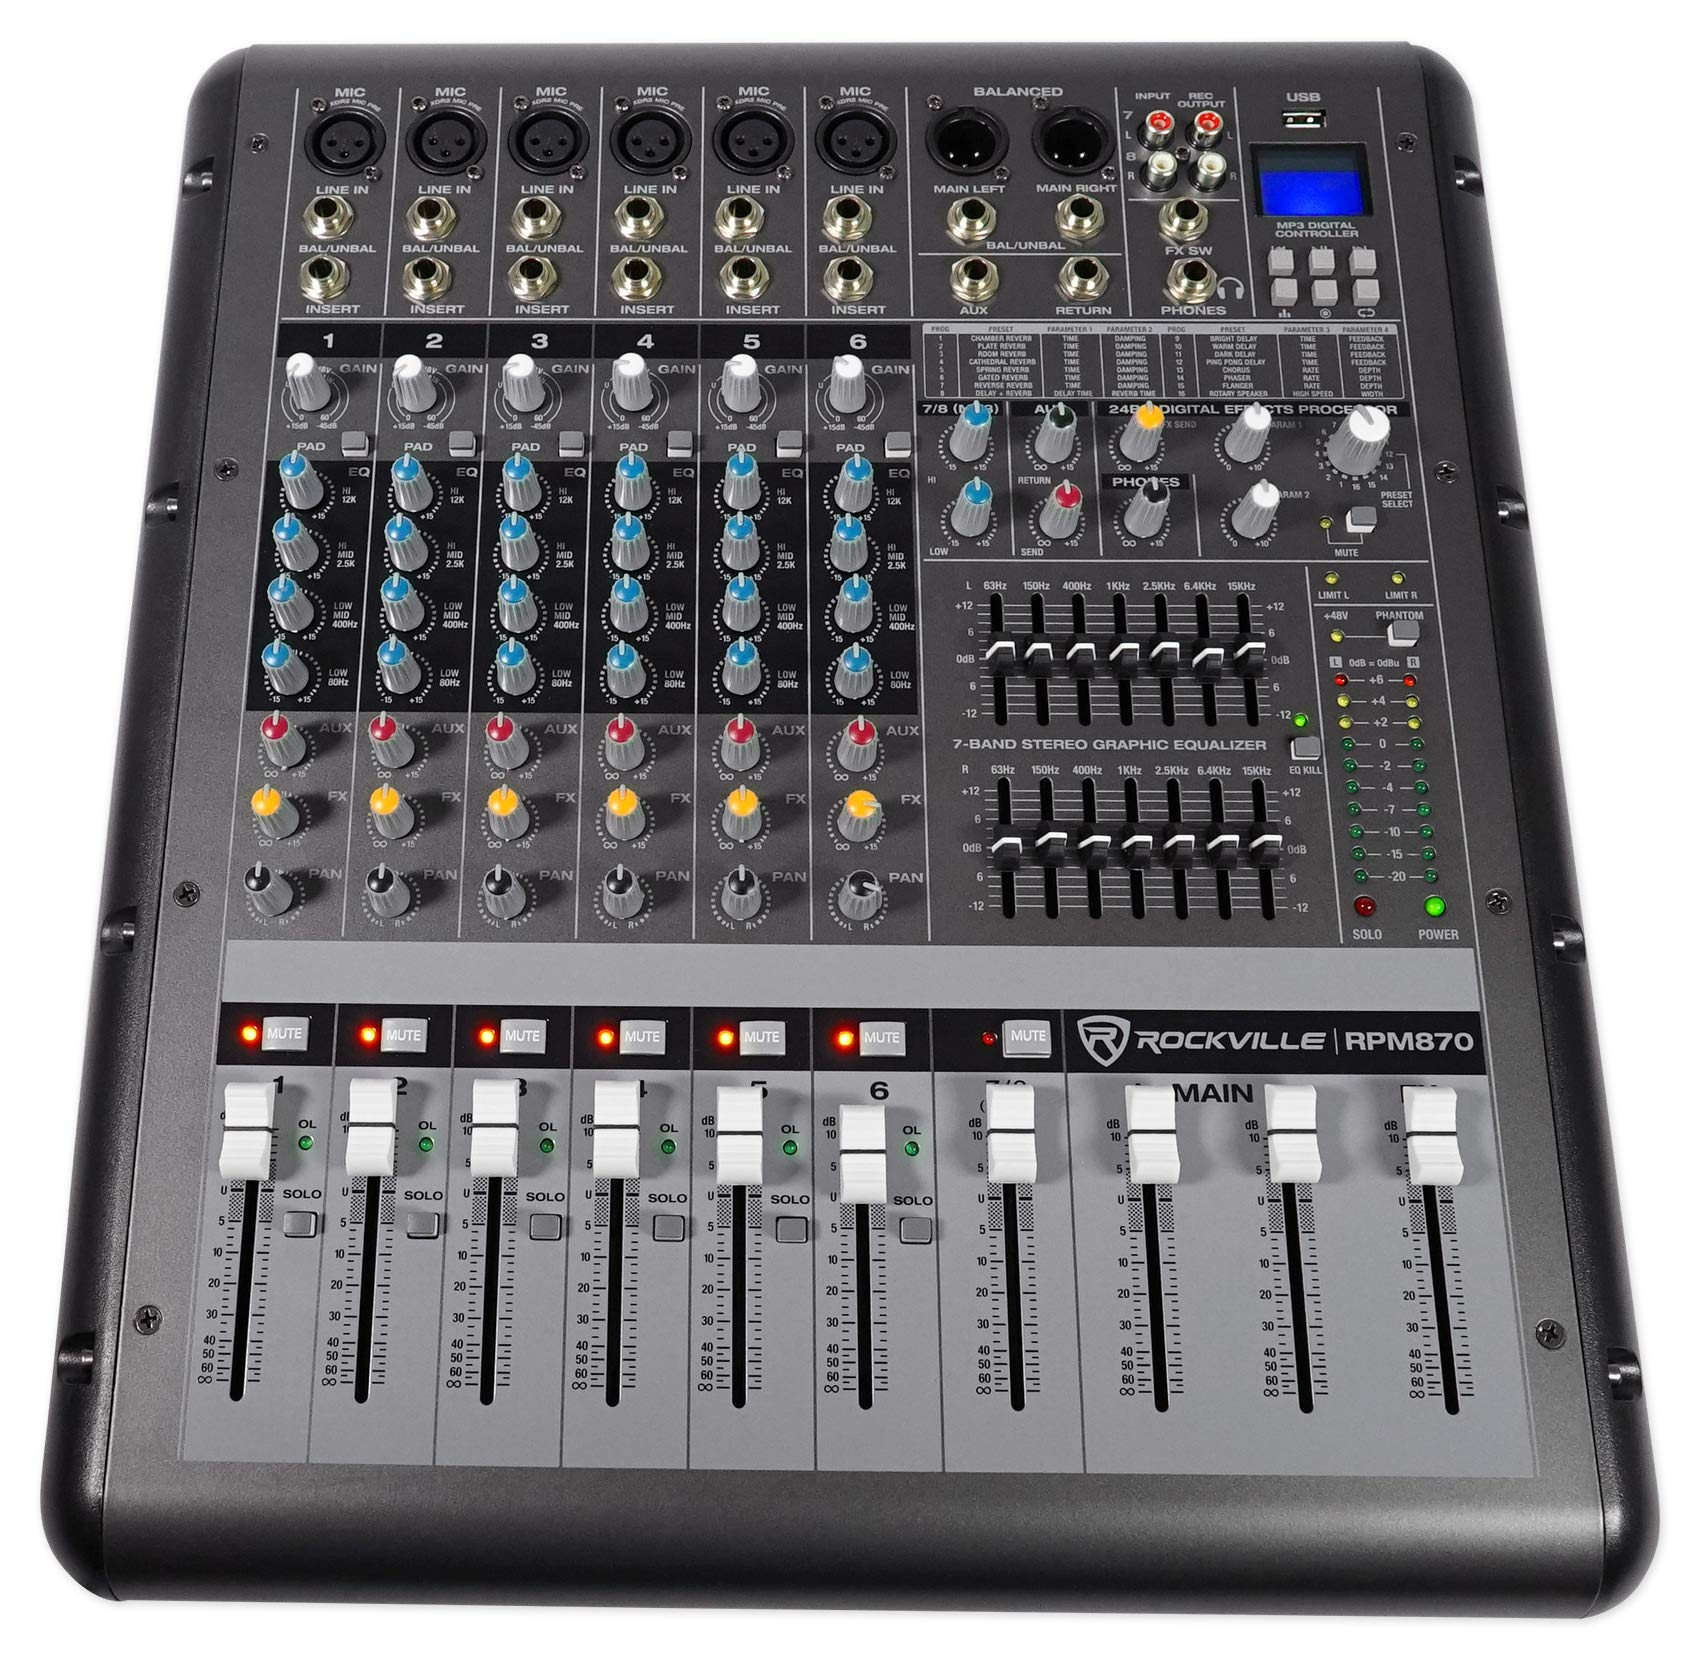 Rockville RPM870 8 Channel 6000w Powered Mixer w/USB, Effects, 8 XDR2 Mic Pres by Rockville